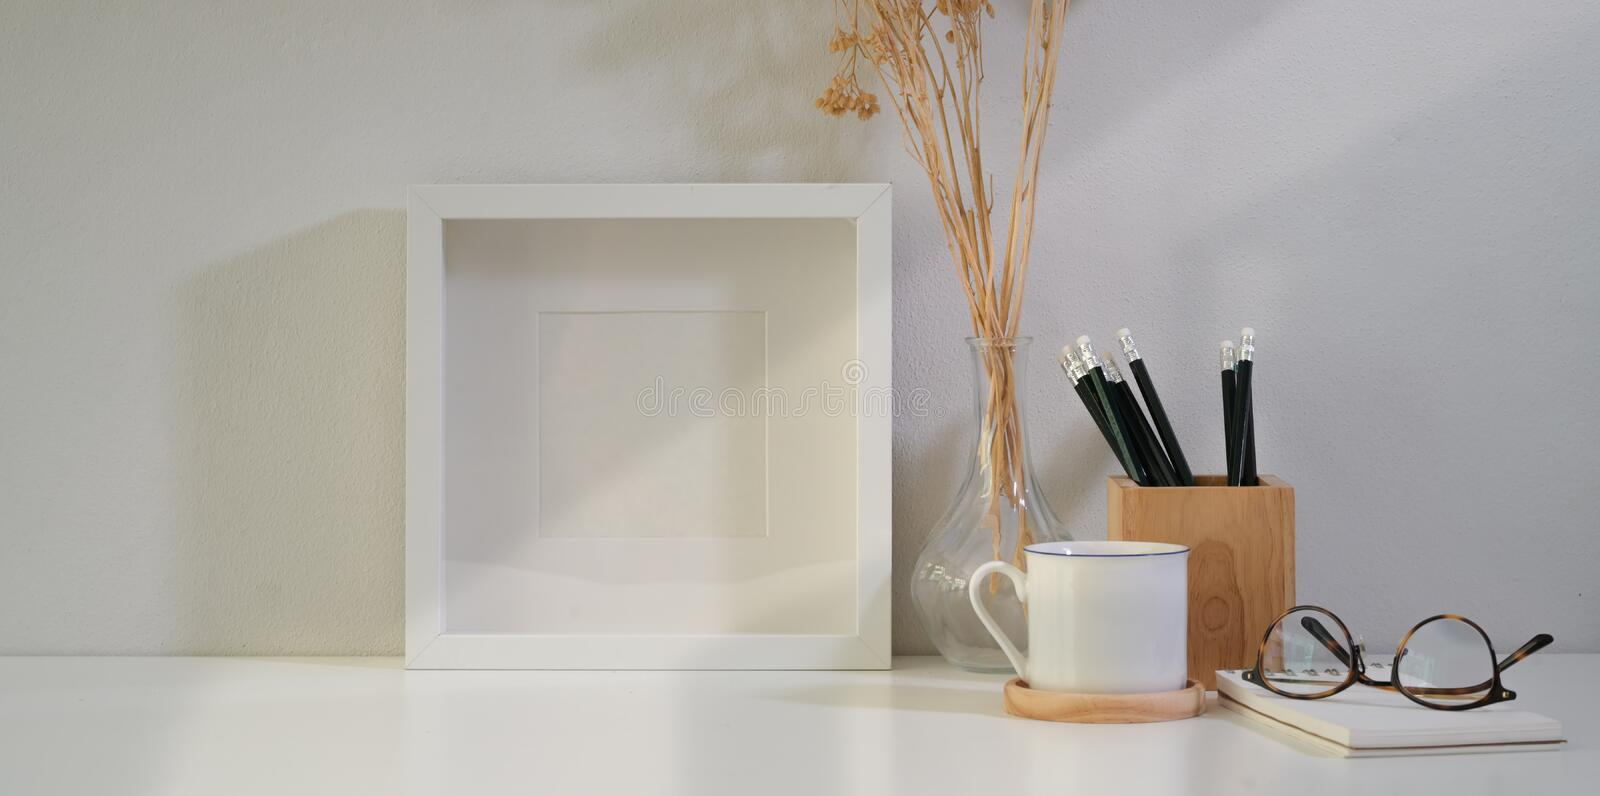 Mock up poster or photo frame and supplies royalty free stock photography